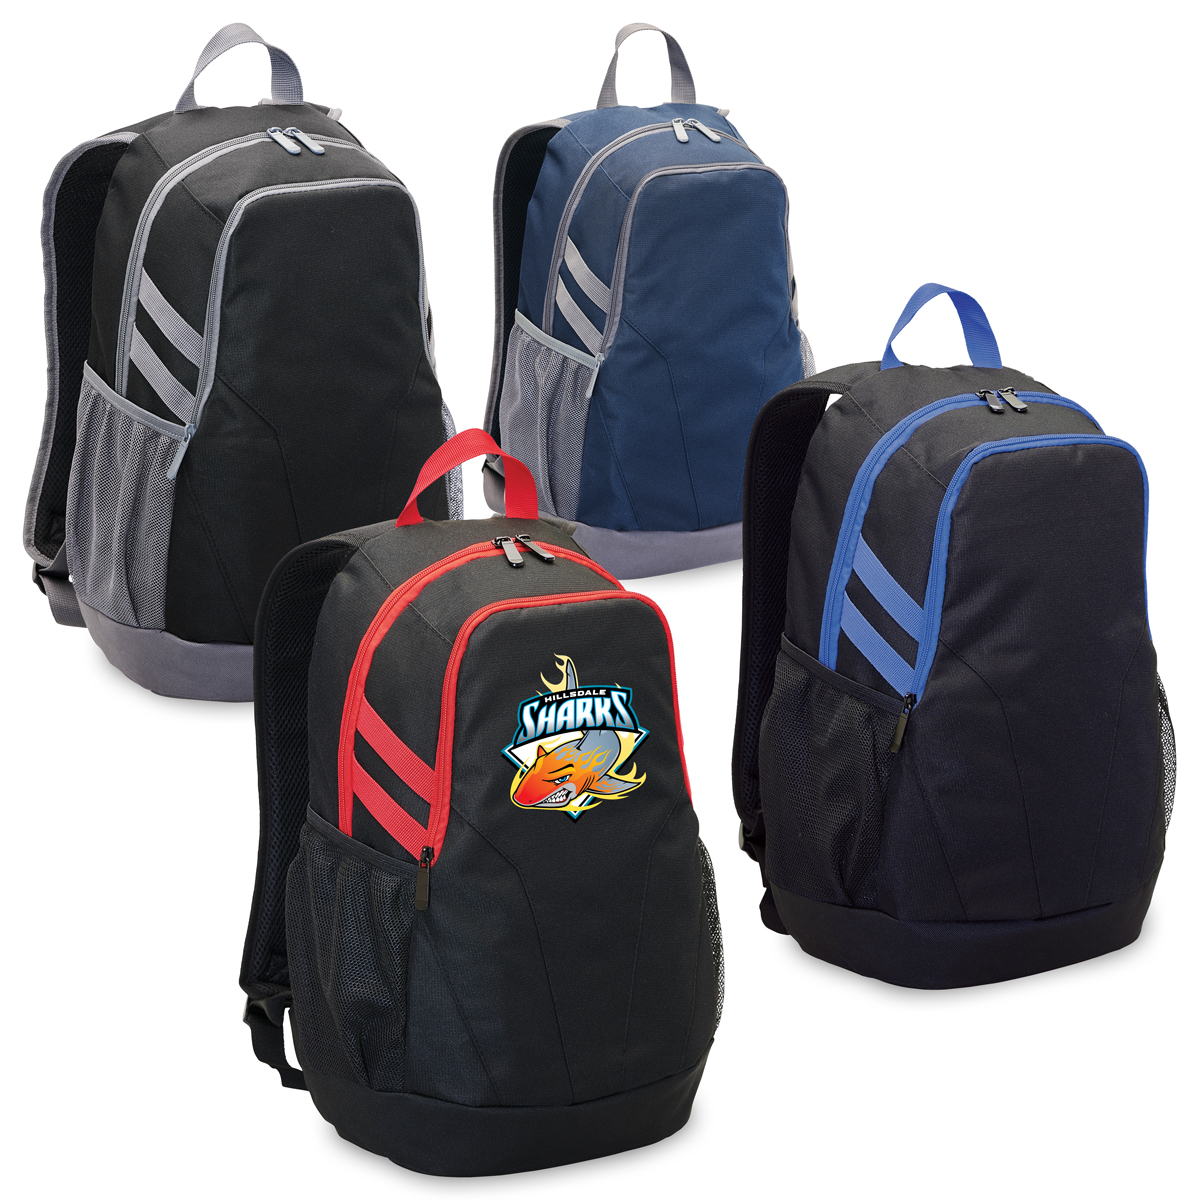 Velocity Laptop BackPack